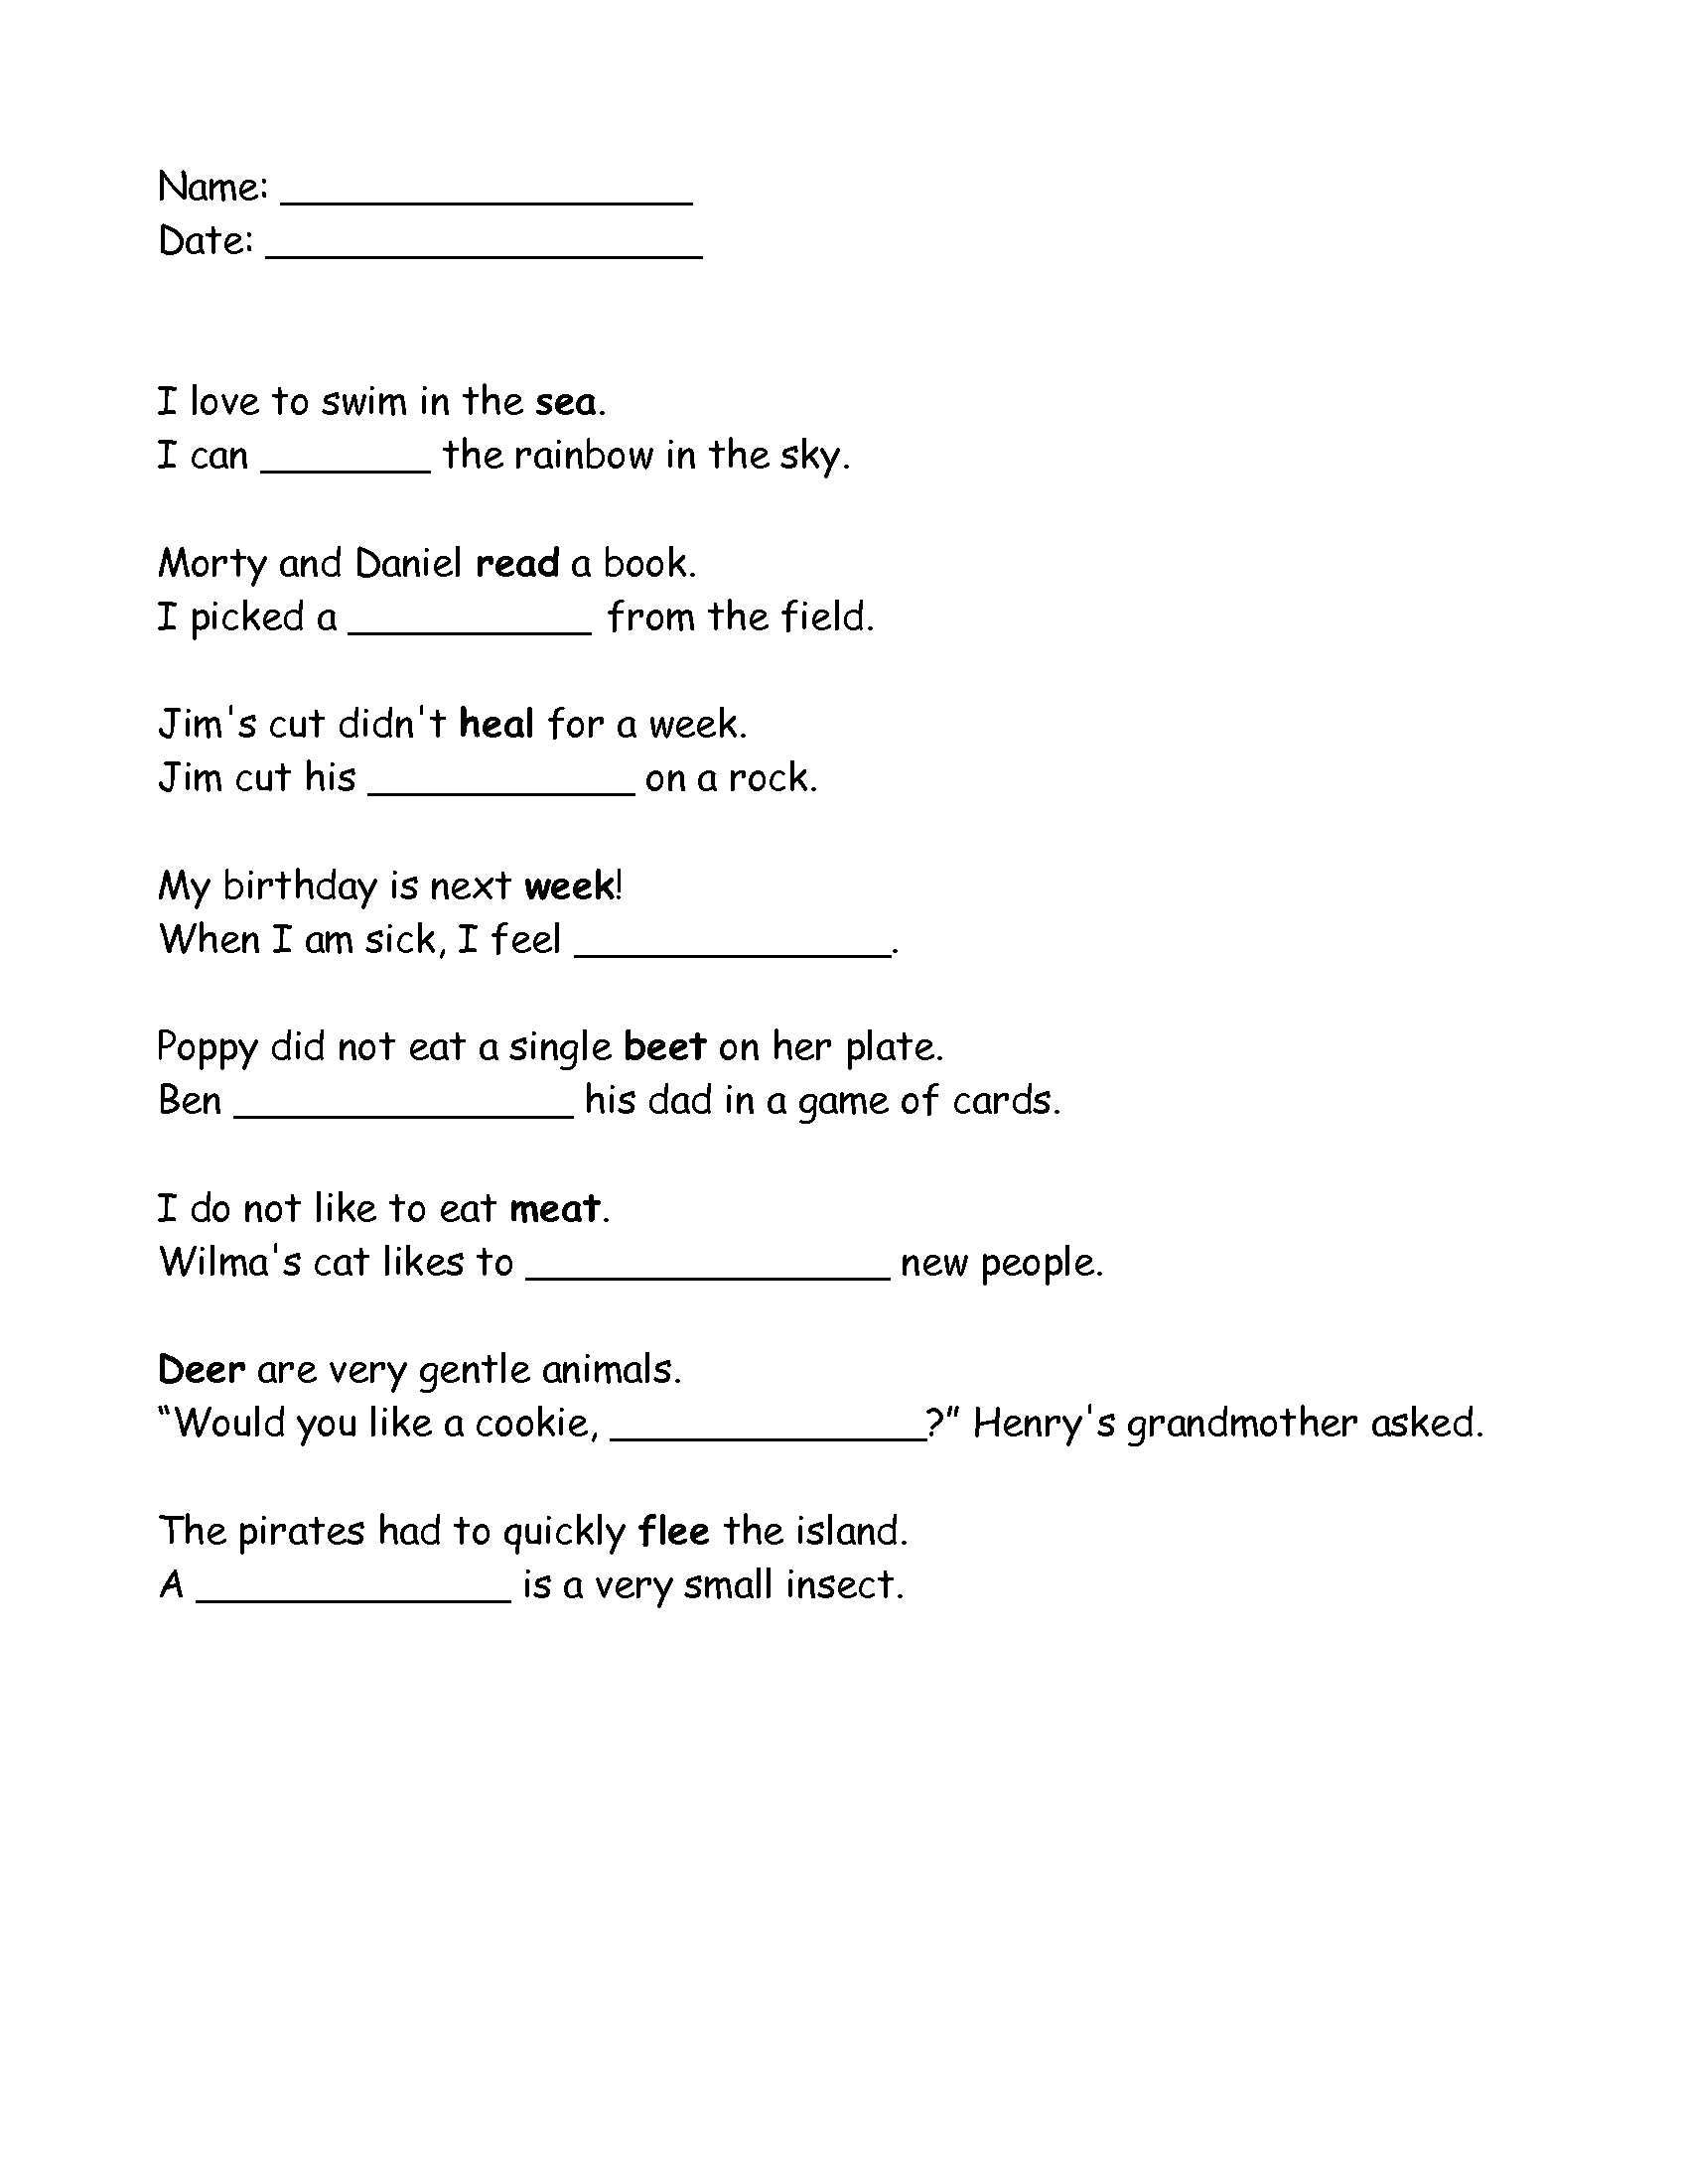 Homophones Worksheets for Grade 2 Grade 2 Homophones Ee and Ea Worksheet that I Made Click